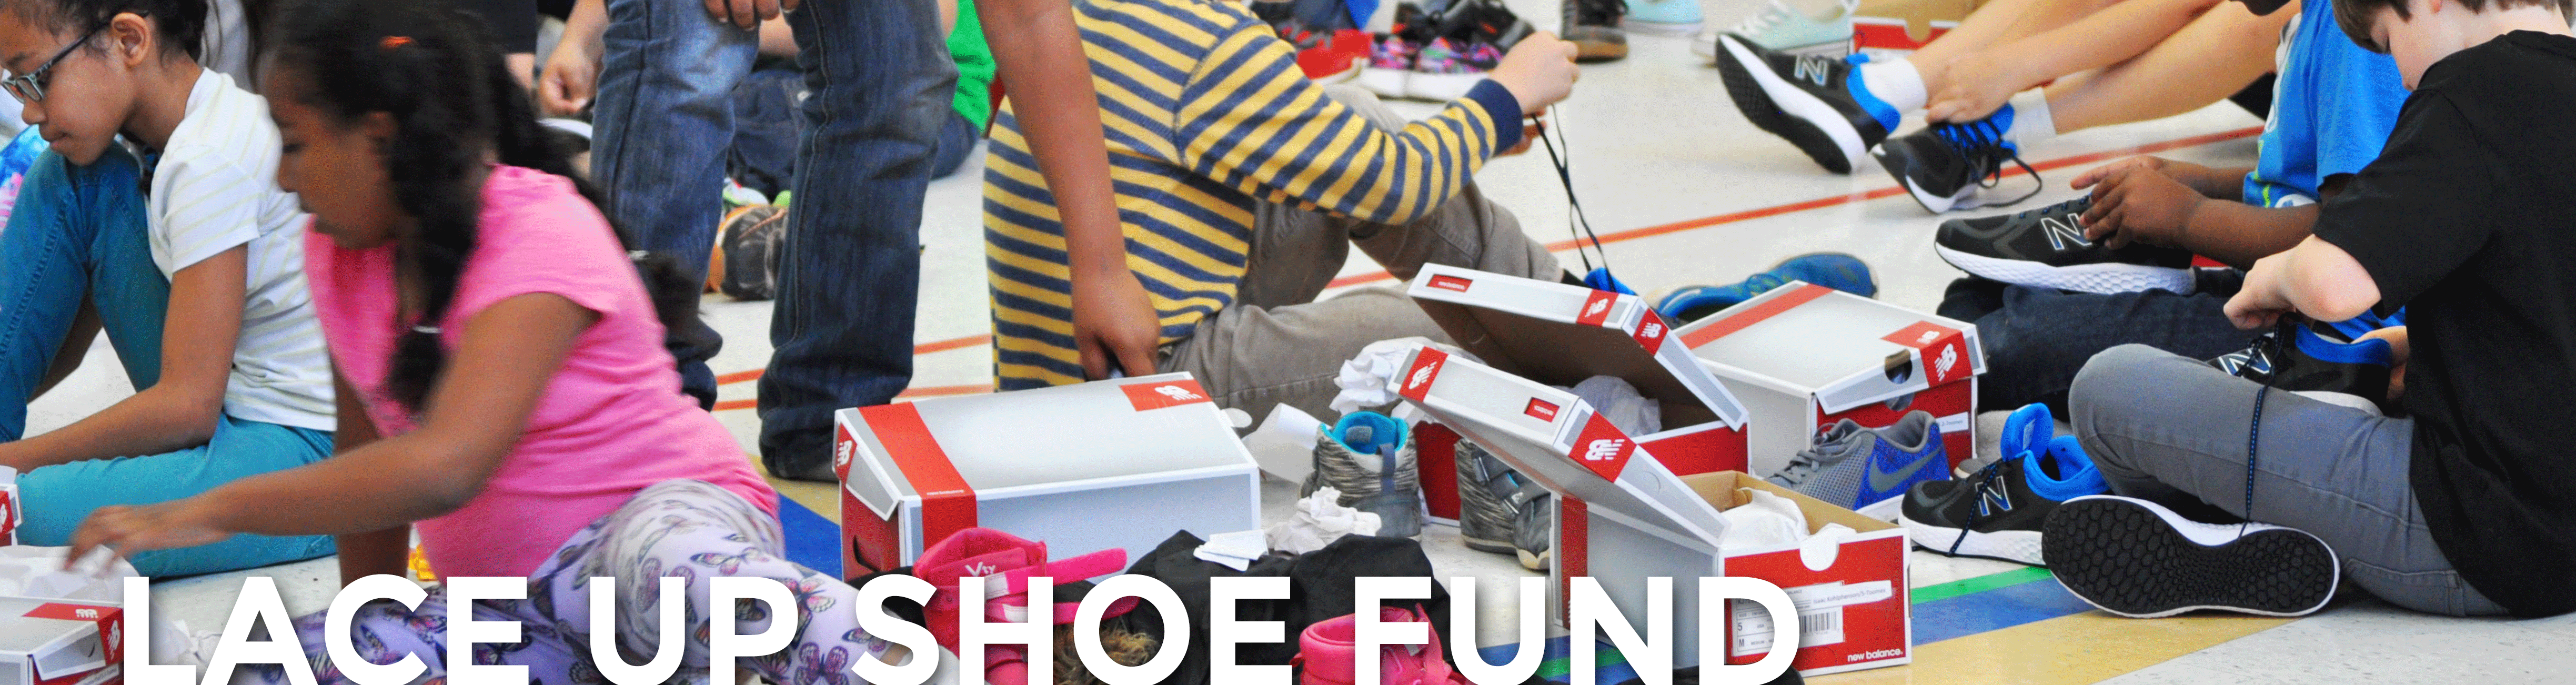 Lace Up Shoe Fund